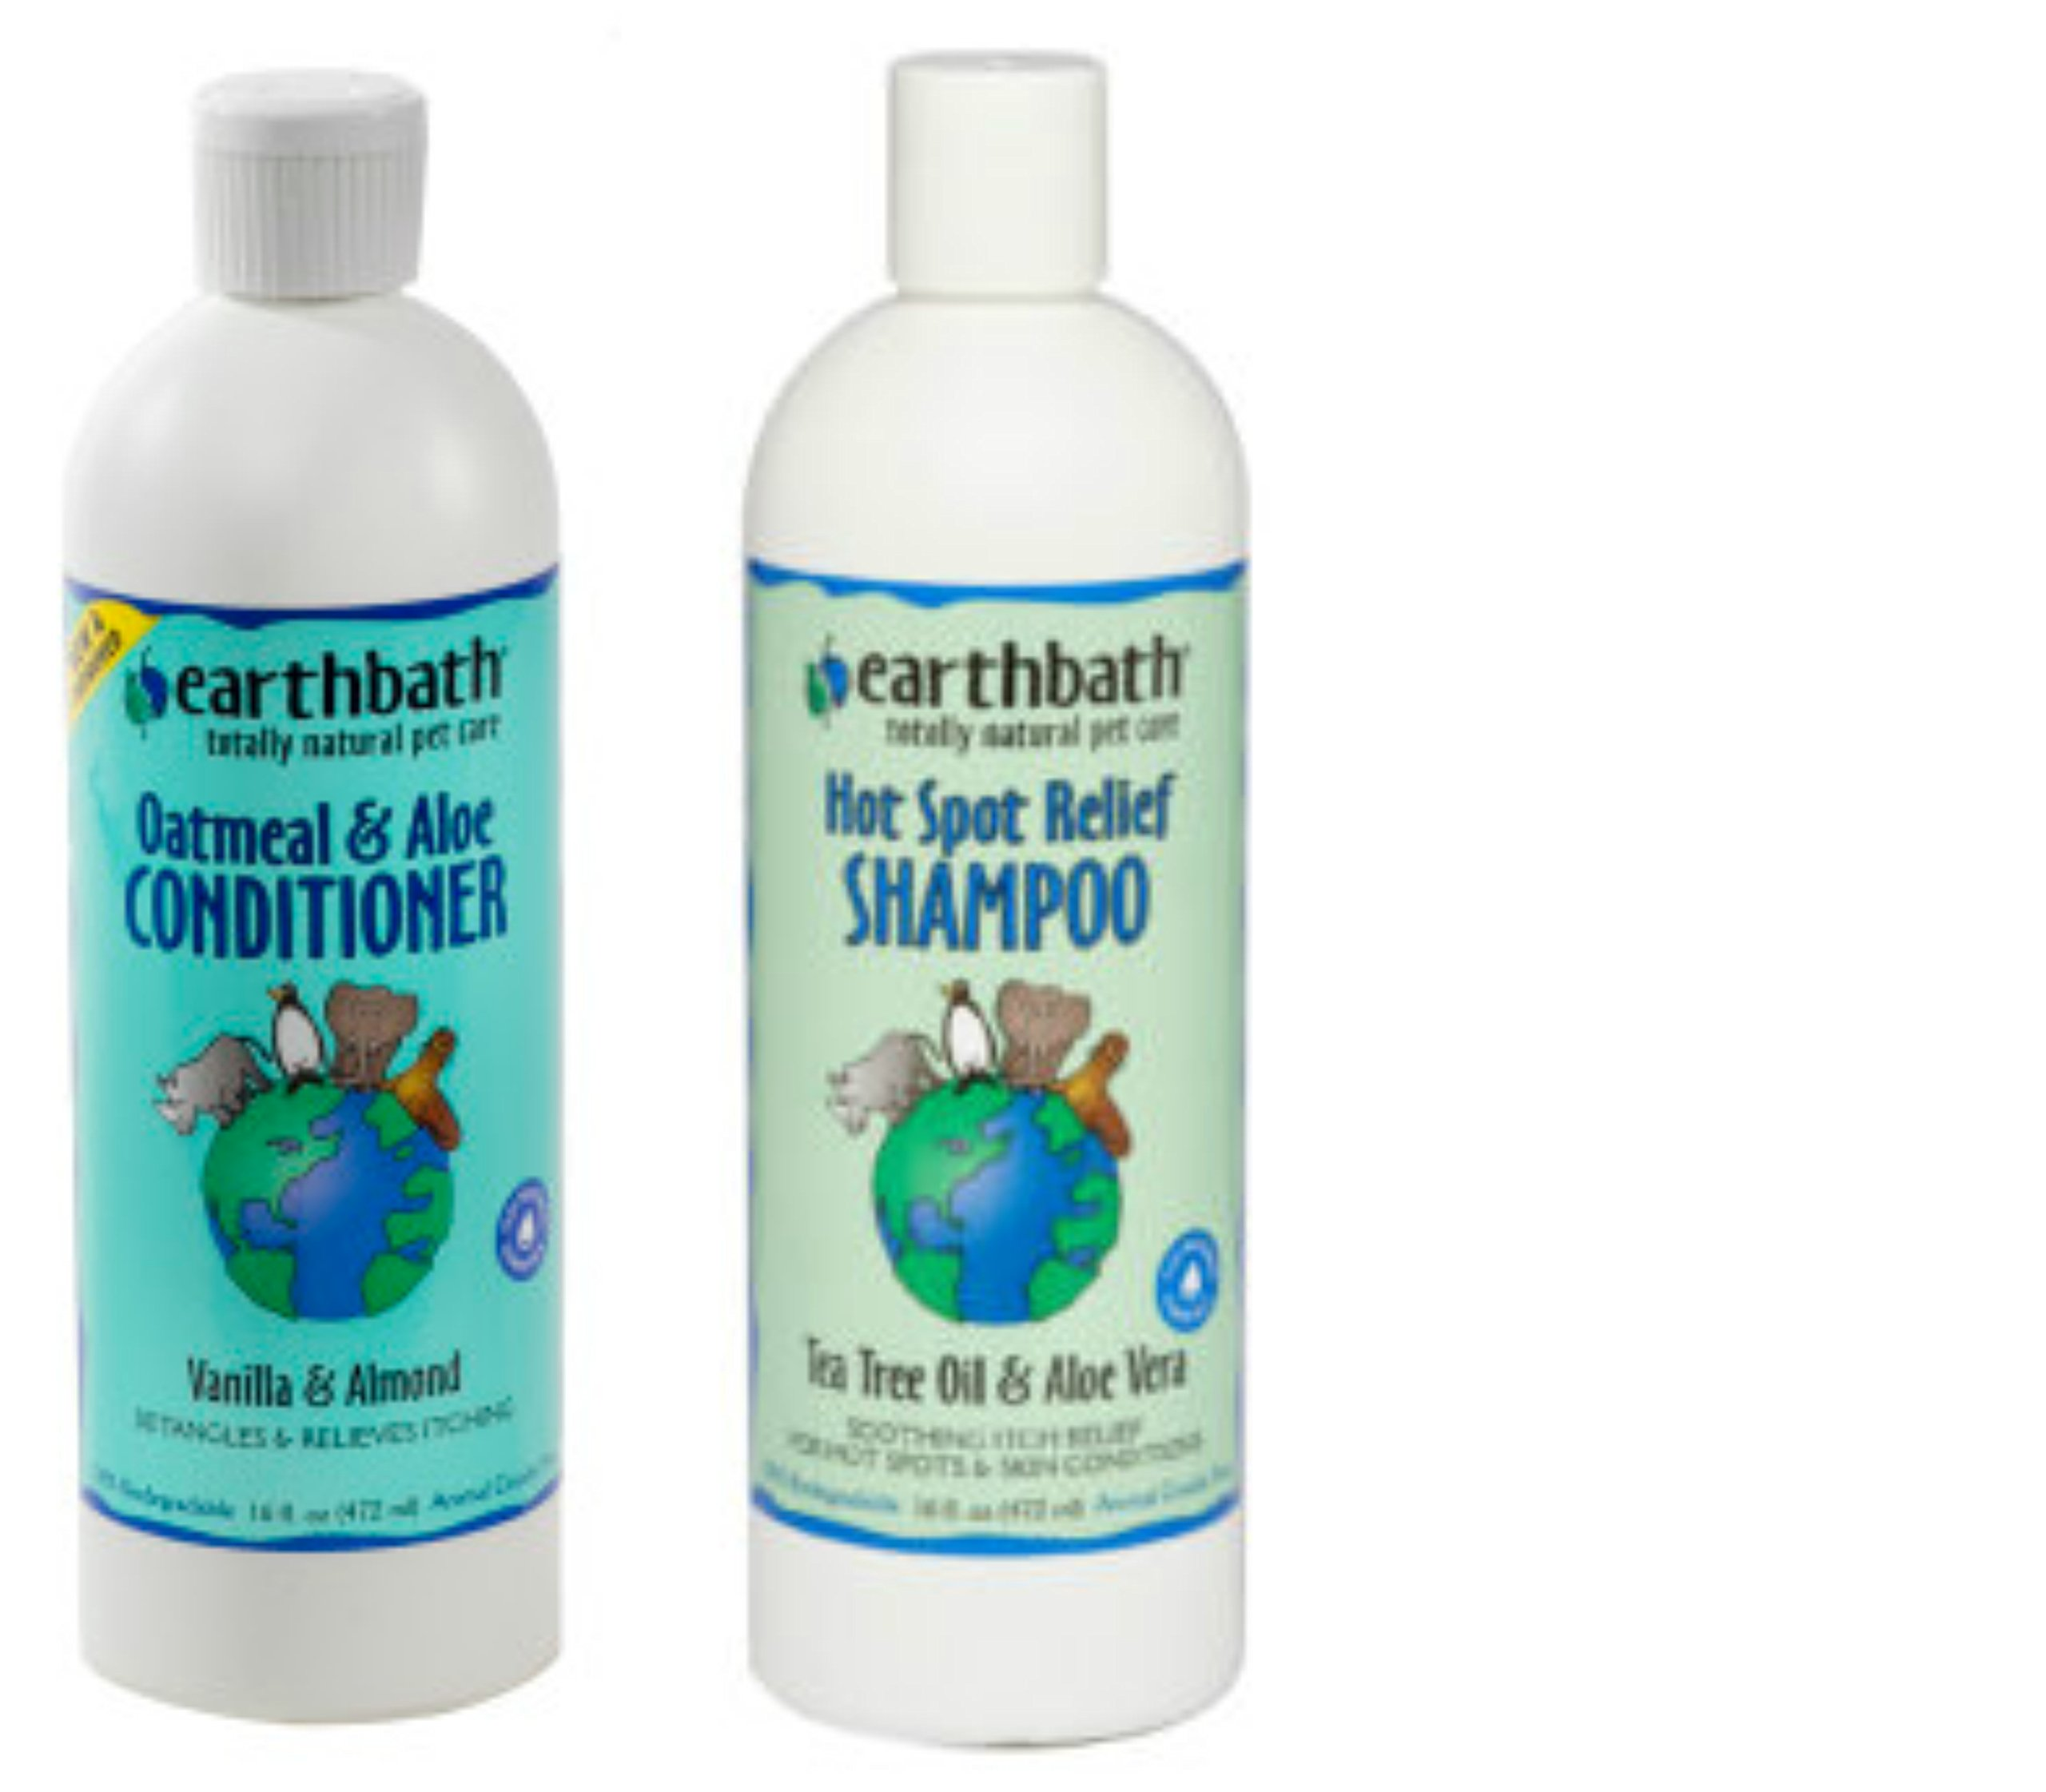 Earthbath Hot Spot Relief Tea Tree Oil and Aloe Vera Shampoo for Dogs and Cats, 16 oz, and Earthbath Oatmeal and Aloe Conditioner for Dogs and Cats, Vanilla and Almond Scent,16 oz by Earthbath (Image #1)